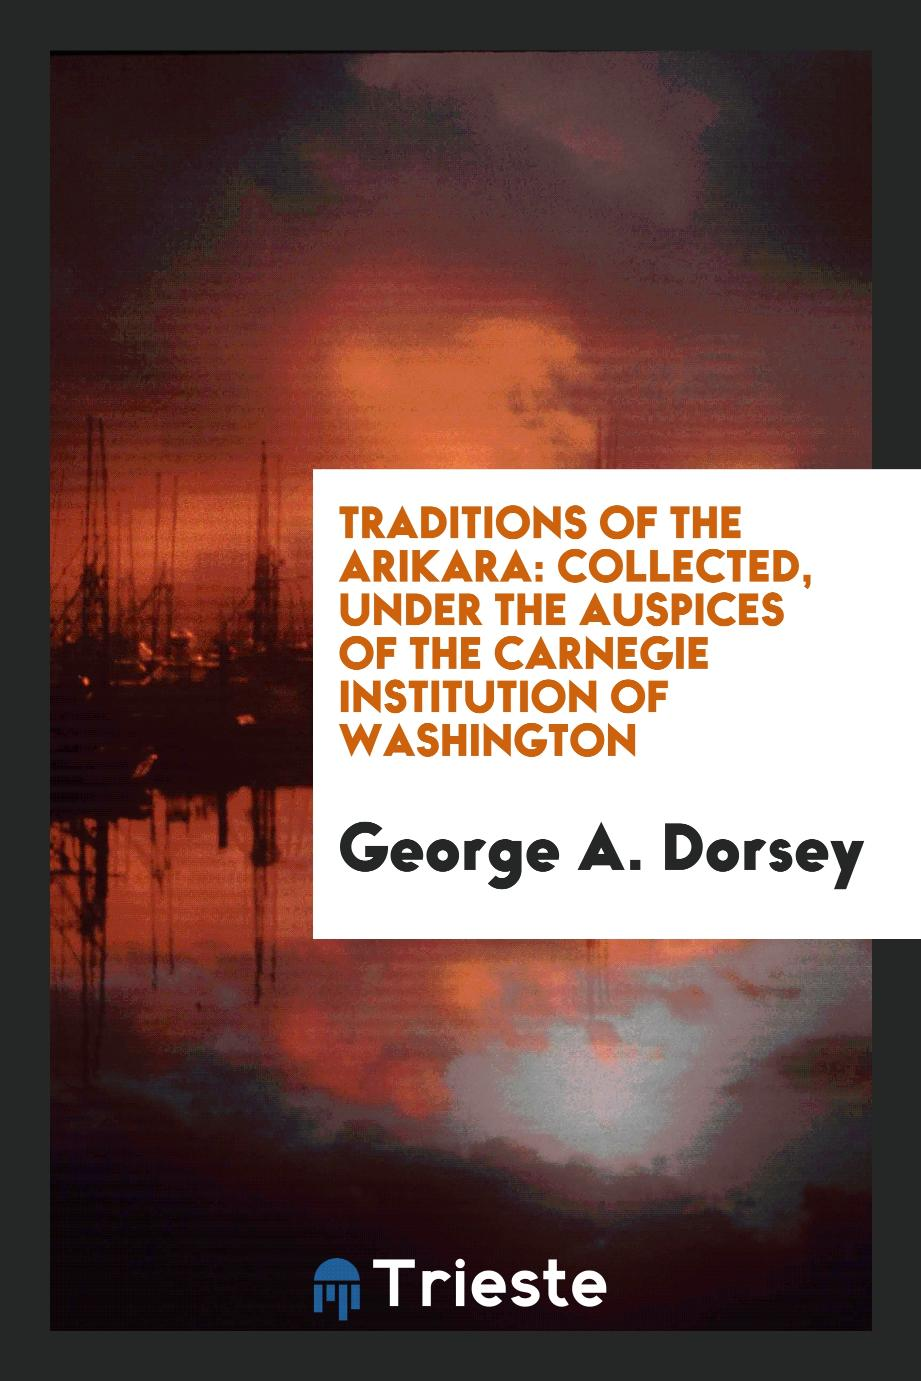 Traditions of the Arikara: collected, under the auspices of the Carnegie Institution of Washington